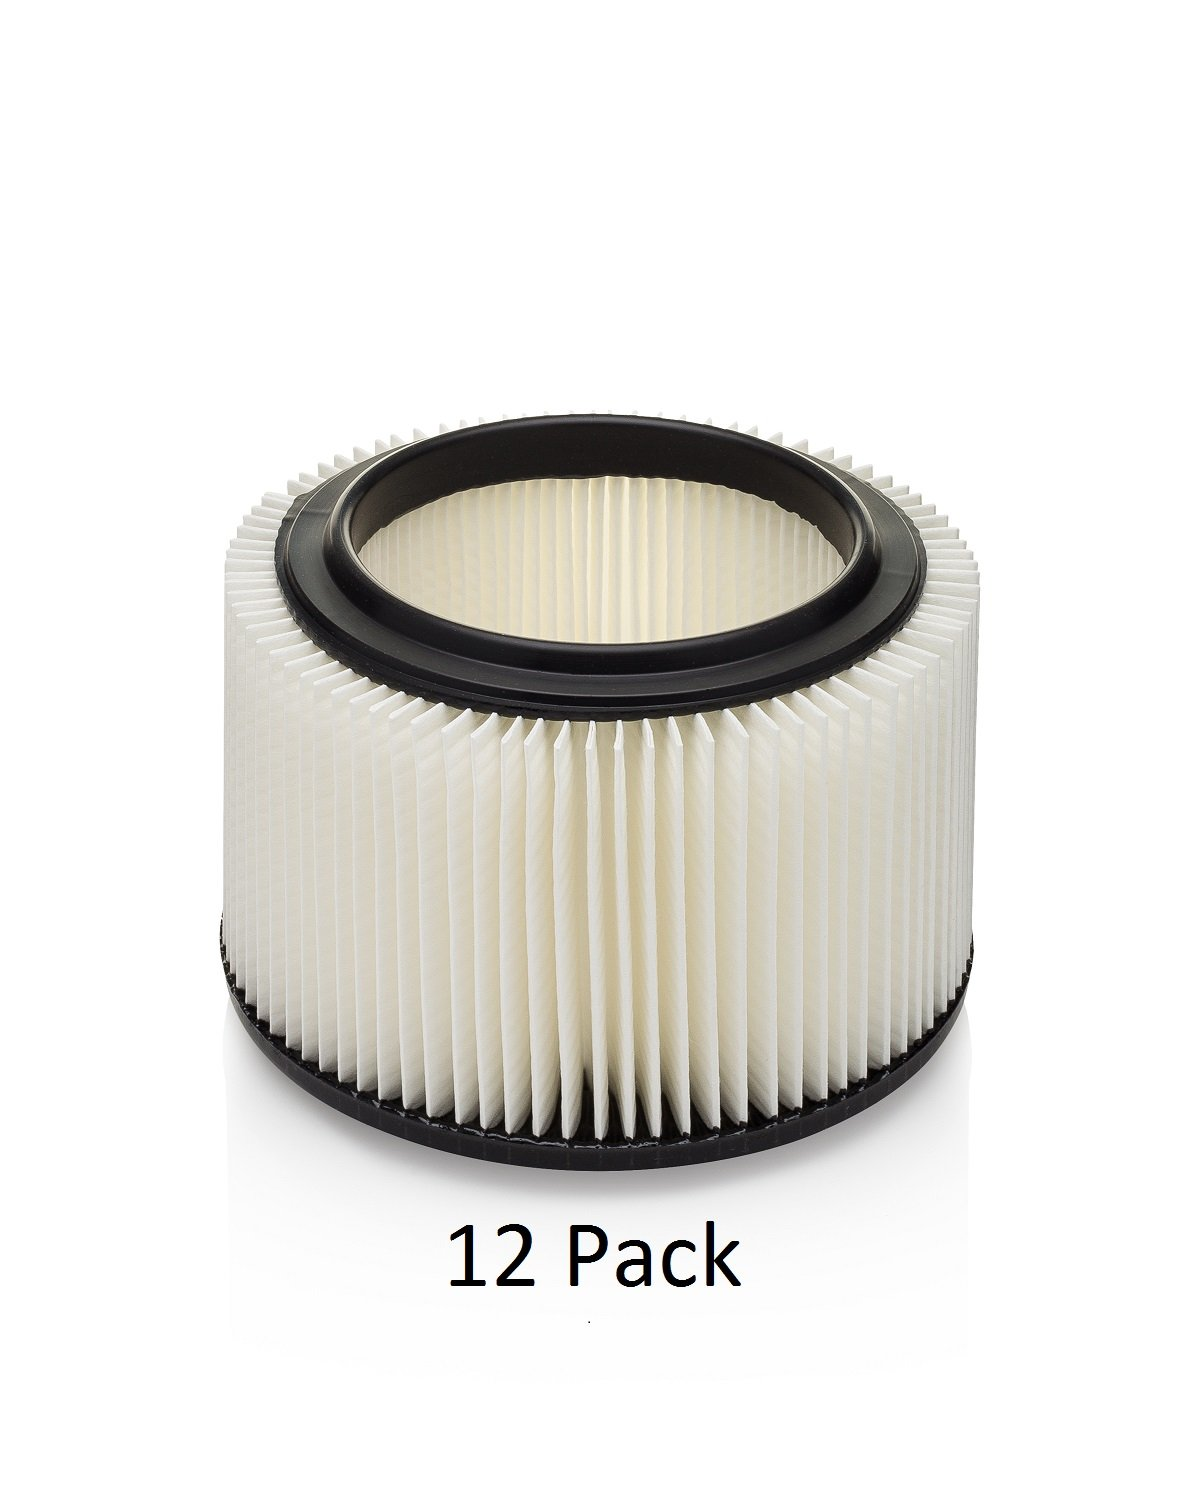 Kopach Replacement Filter for Masterforce 3 & 4 Vacuums, 12 Pack, Deluxe Fine Particle Filter